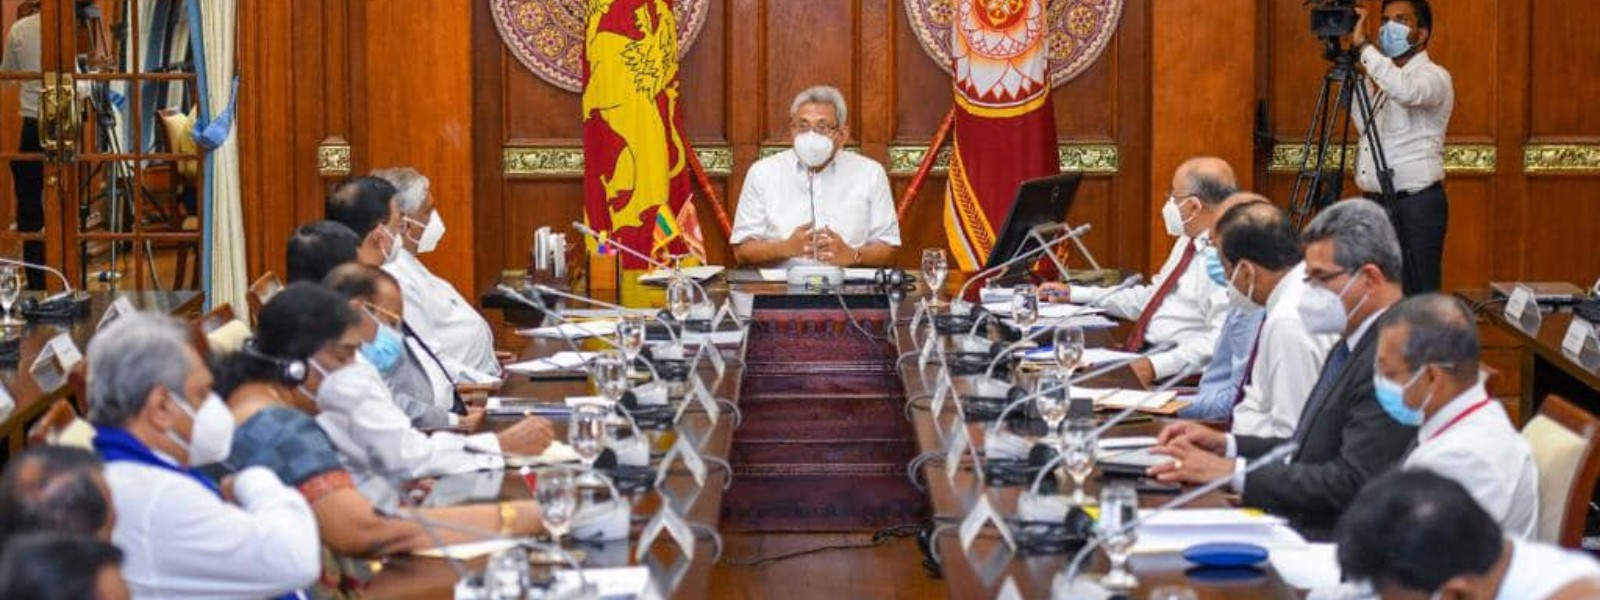 Re-start all inactive and suspended projects; President